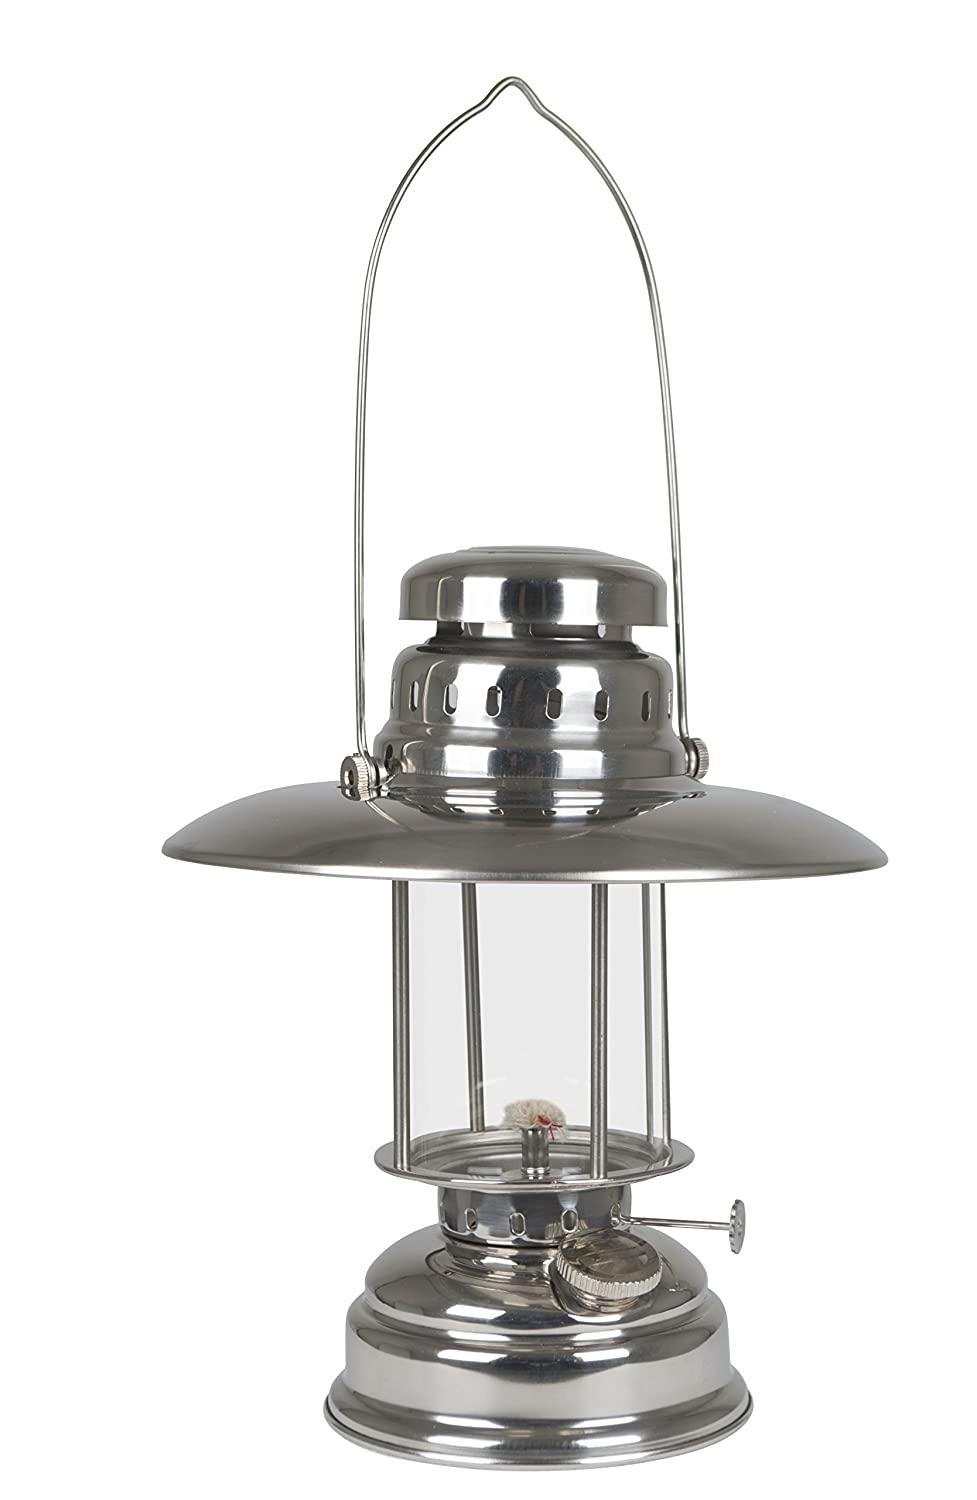 Bo-Camp Urban Outdoor Loxford Hurricane Lantern, Stainless Steel, Silver uk automotive VAOLZ 8219575